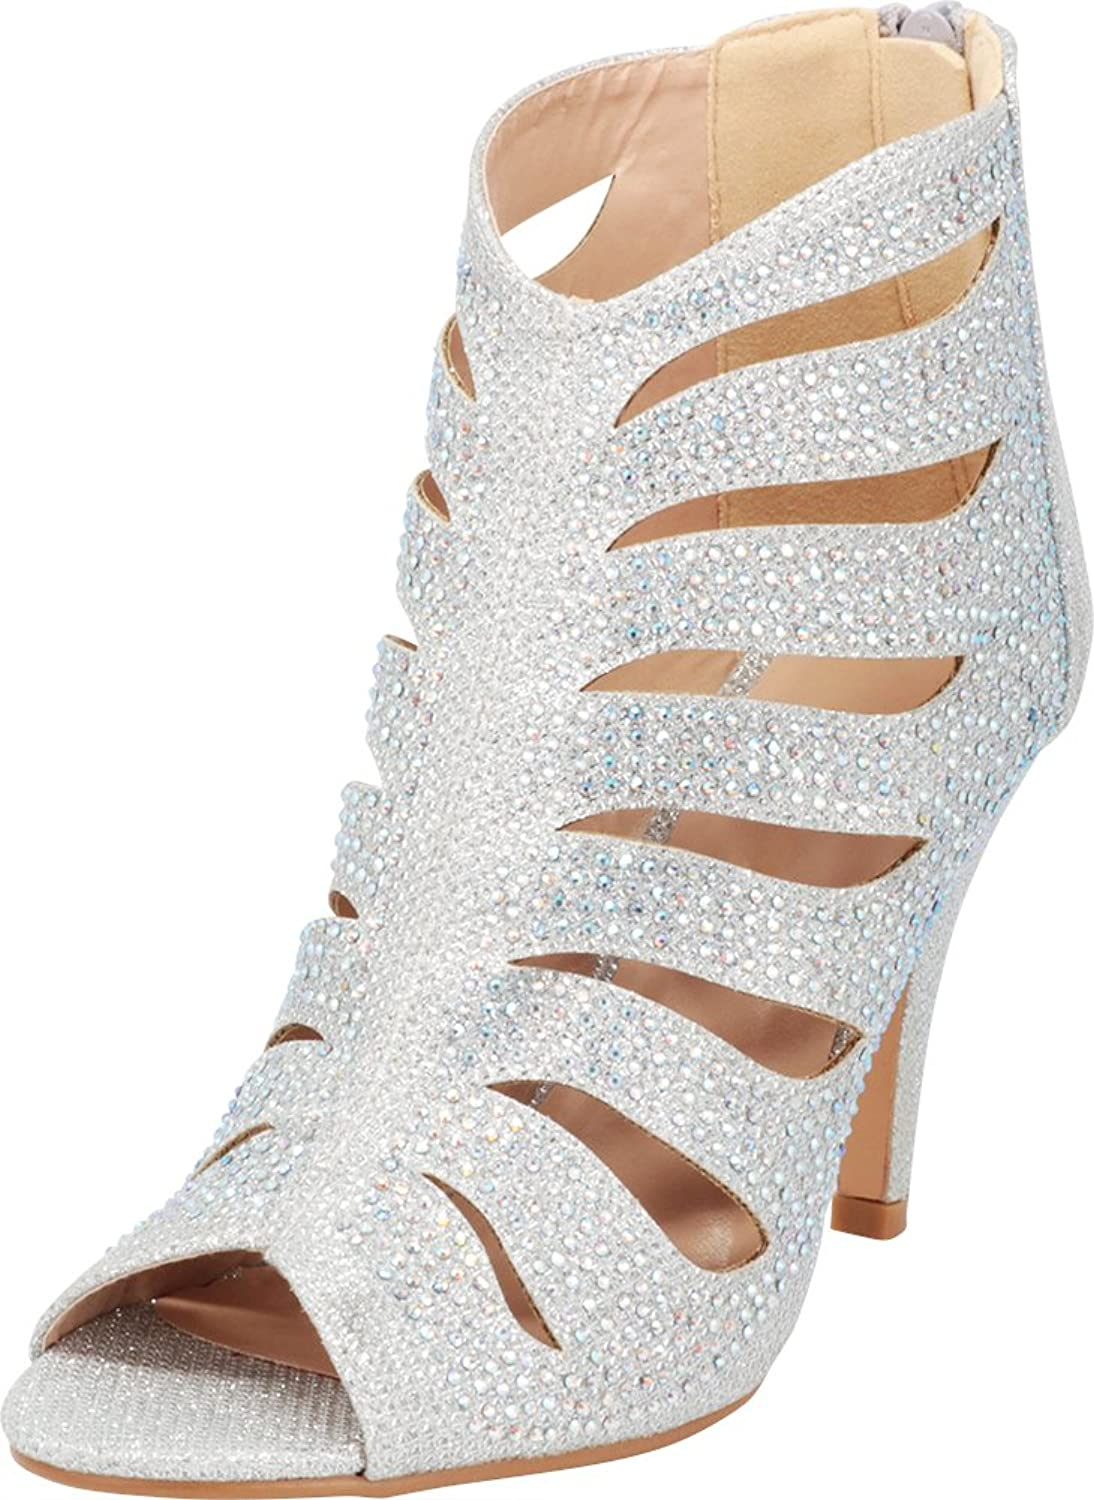 Cambridge Select Women's Open Toe Cutout Caged Glitter Crystal Rhinestone Stiletto High Heel Ankle Bootie